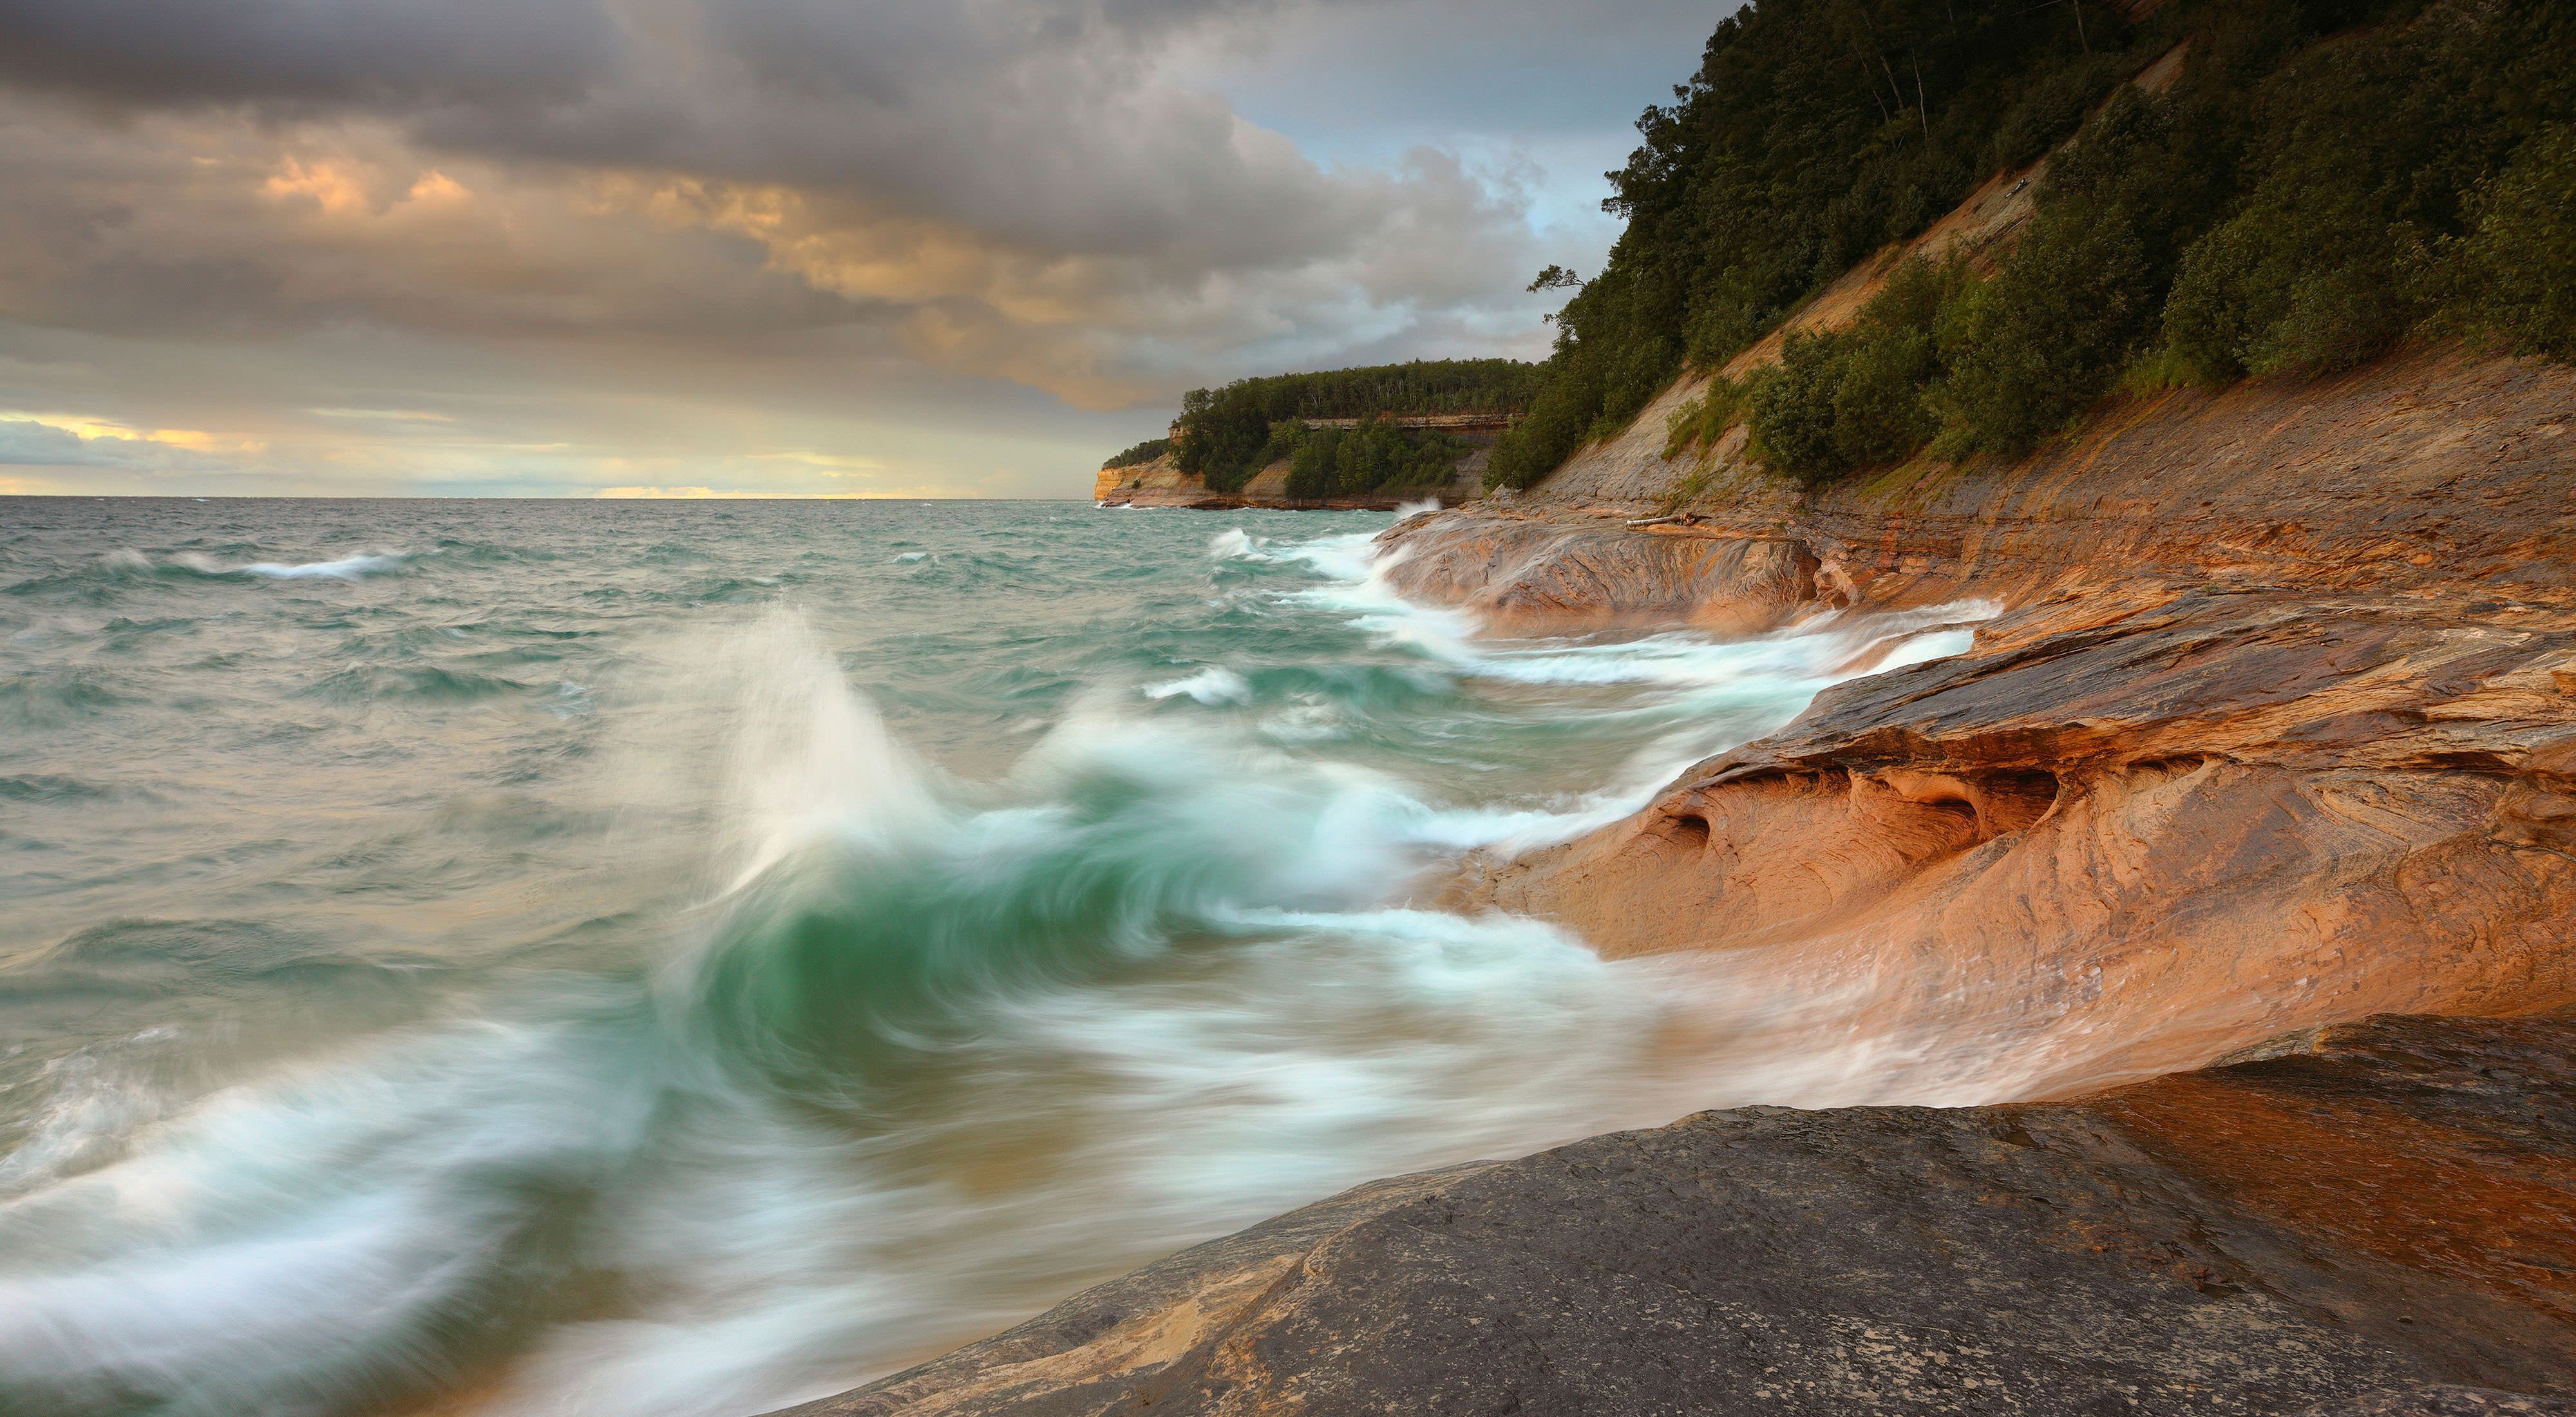 Pictured Rocks National Lakeshore on Lake Superior, Michigan